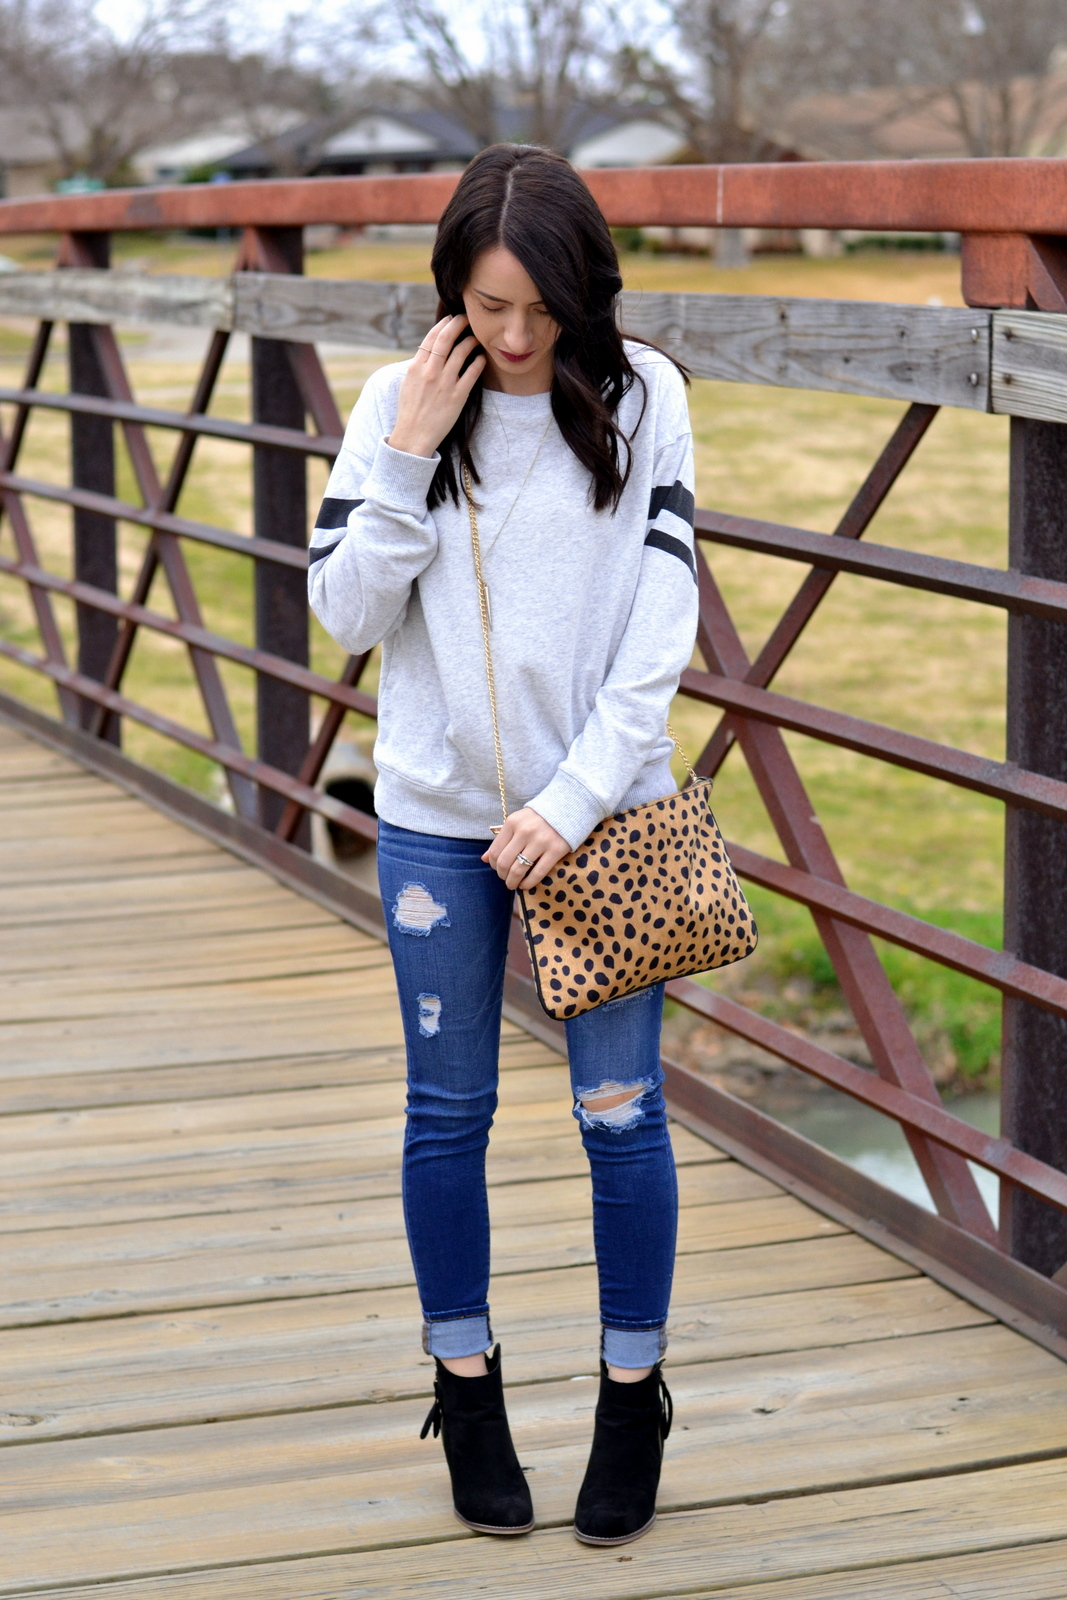 Leopard_Clutch_Ripped_Denim